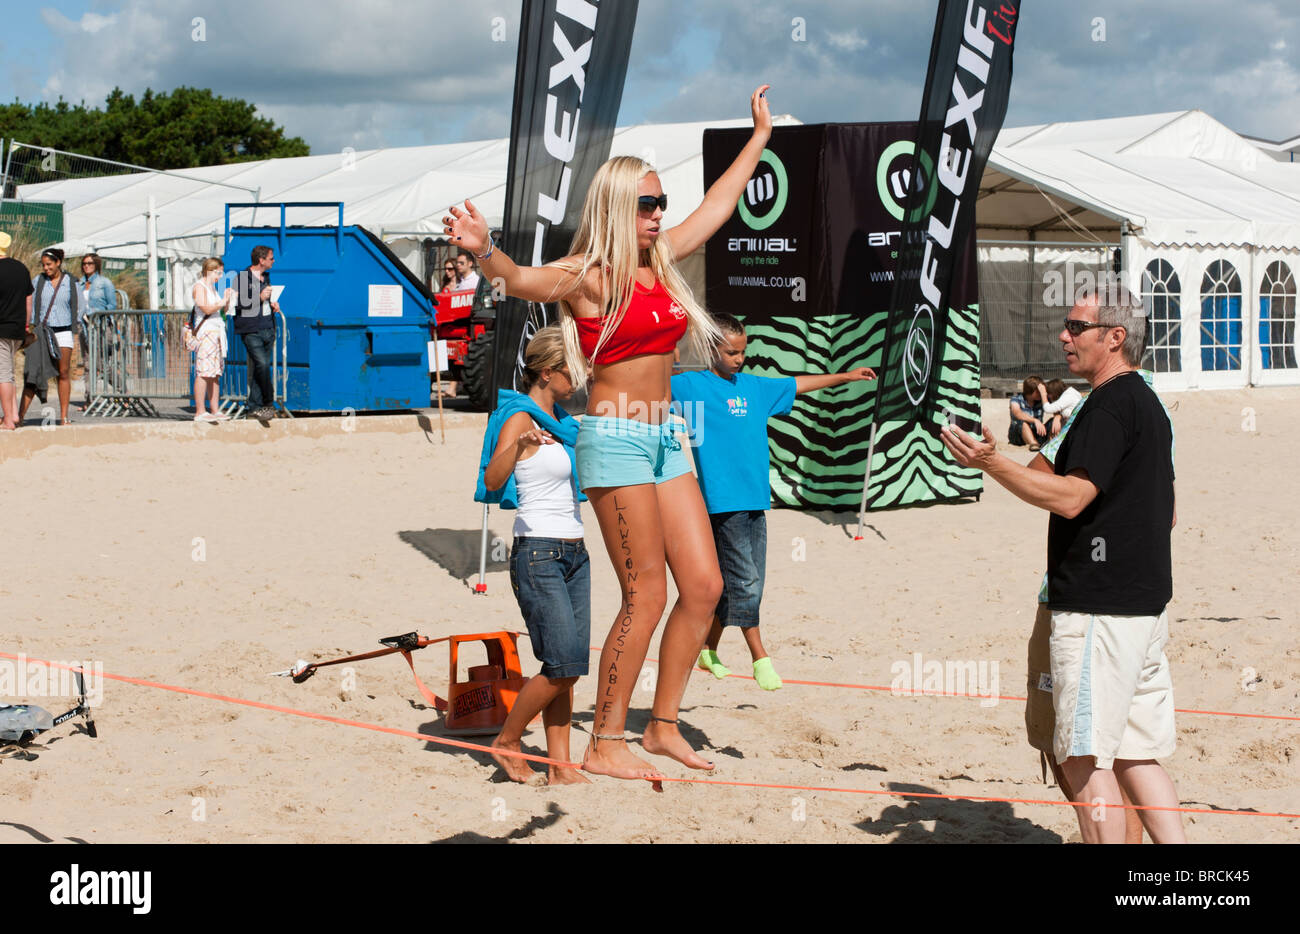 Girl particpating in slacklining at Animal Windfest 2010, held at Sandbanks, Poole. - Stock Image